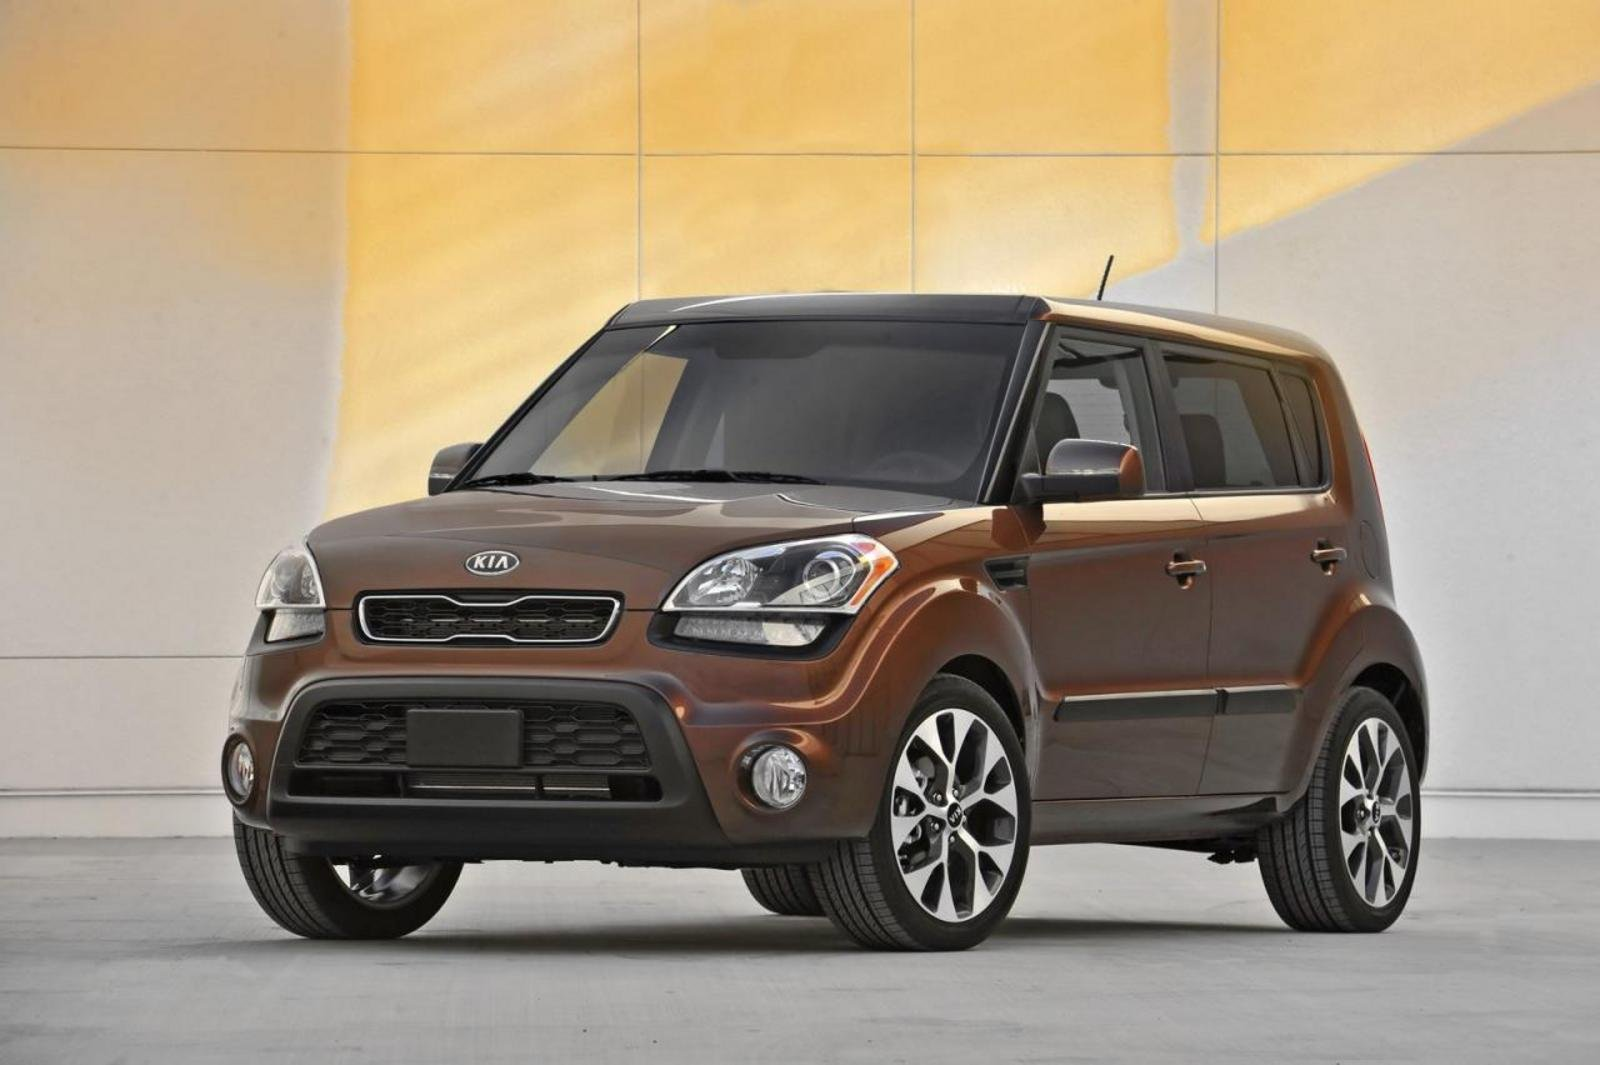 2012 kia soul review top speed. Black Bedroom Furniture Sets. Home Design Ideas